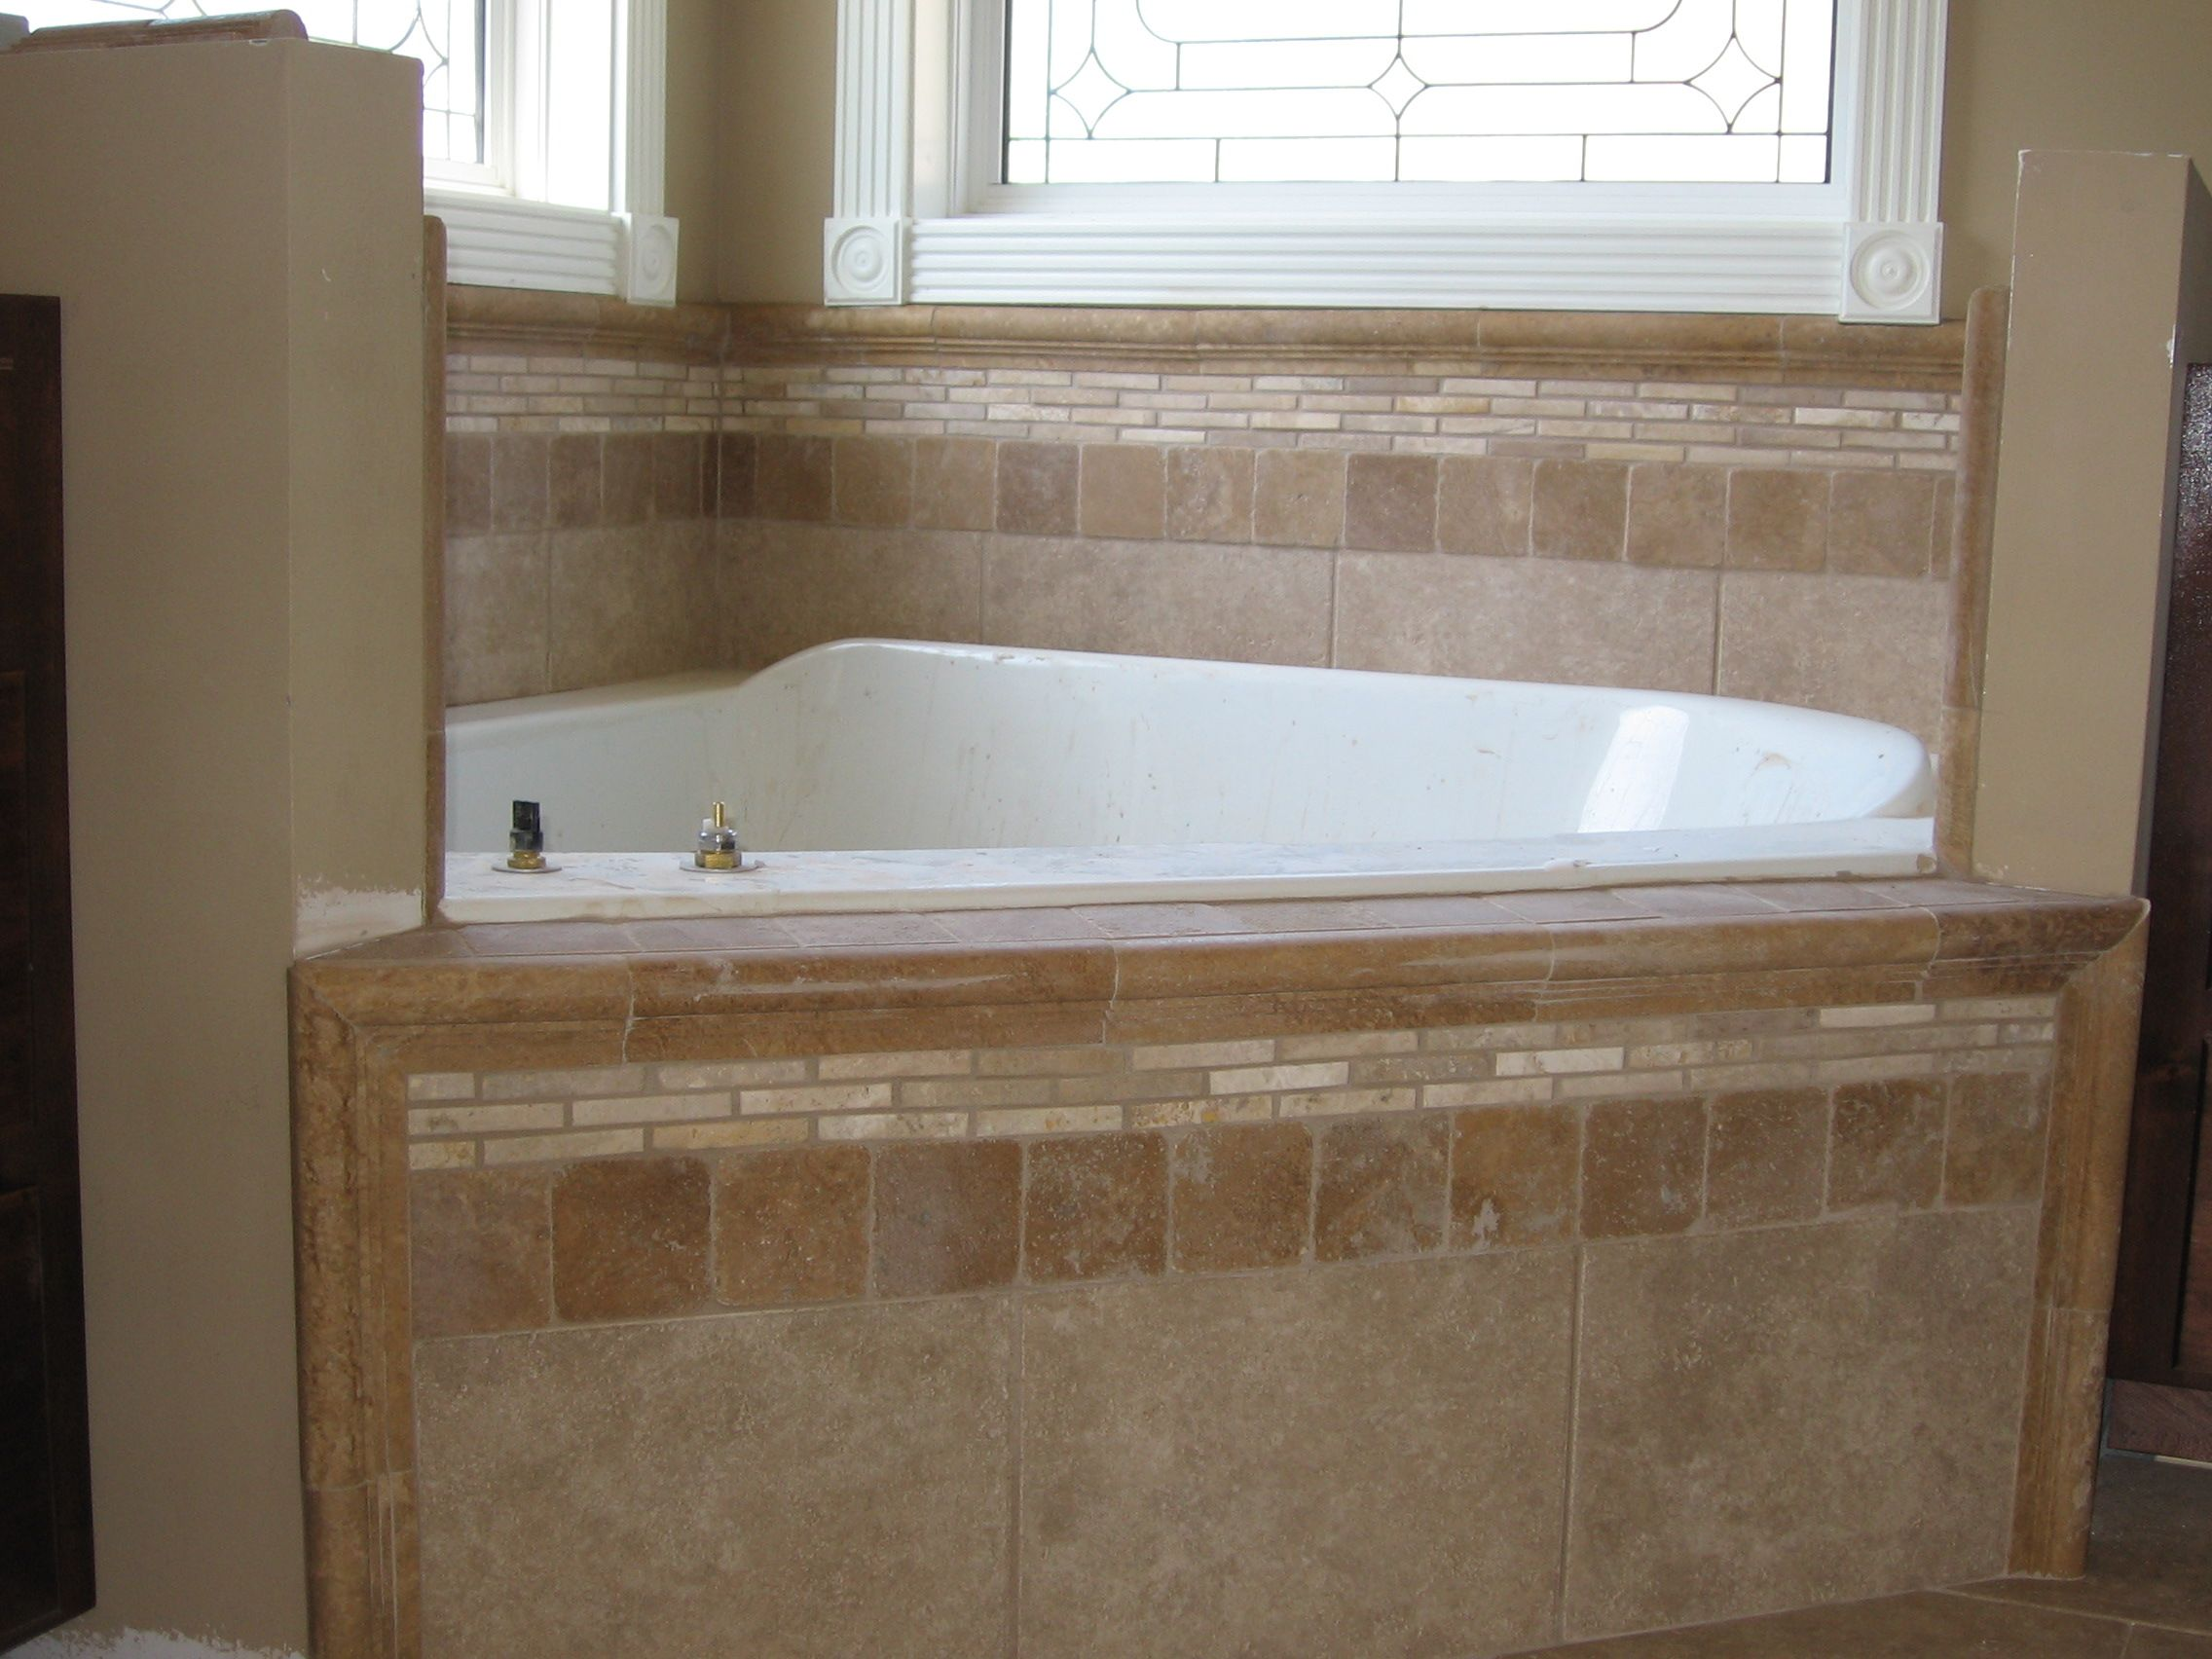 Garden Tub Backsplash | OTROS | Pinterest | Garden Tub, Tubs And  Construction